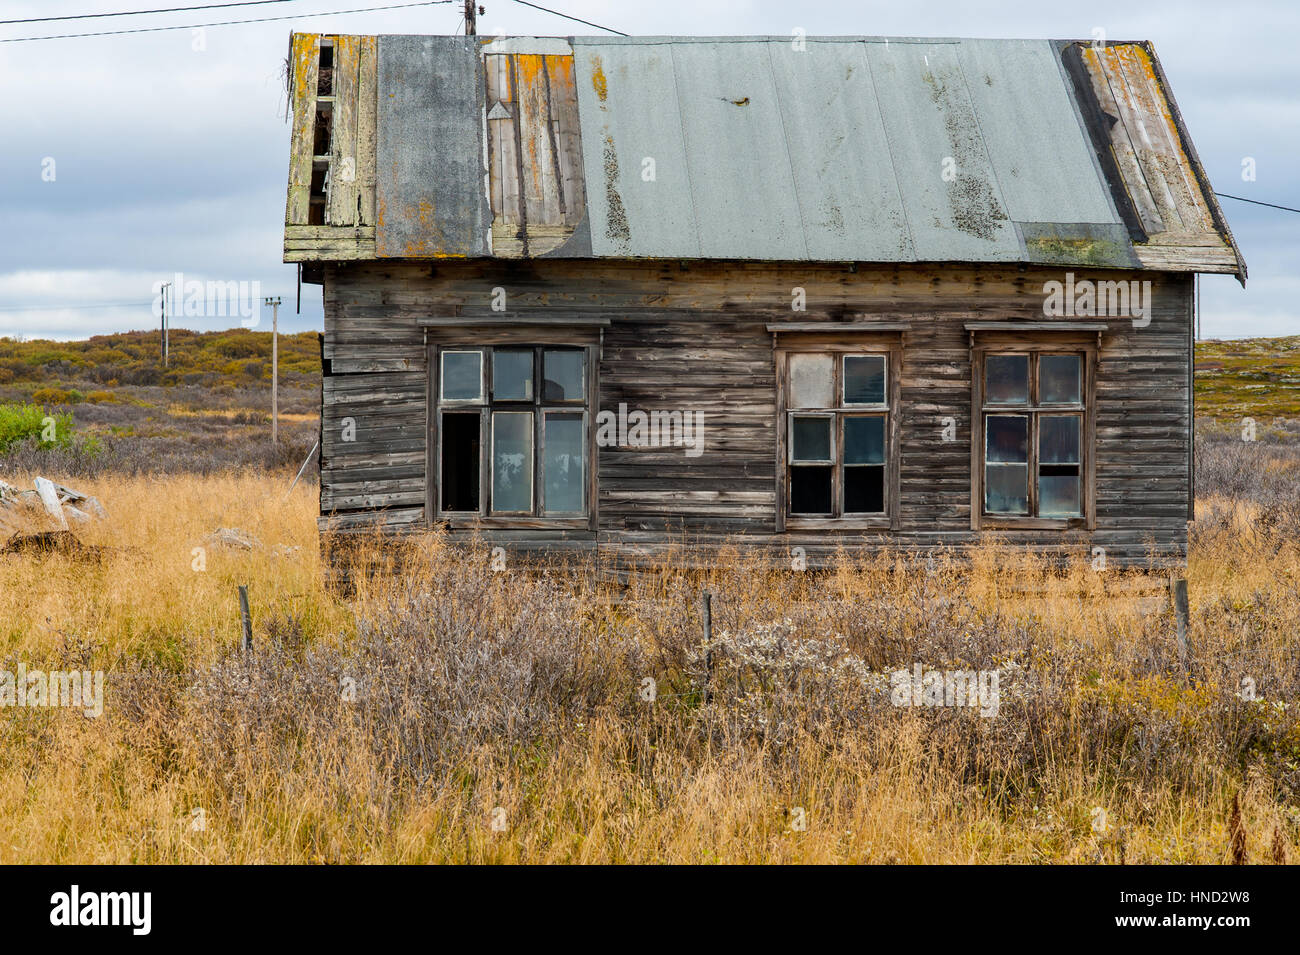 Old wooden decrepit house in need of repair with damaged roof and broken windows - Stock Image